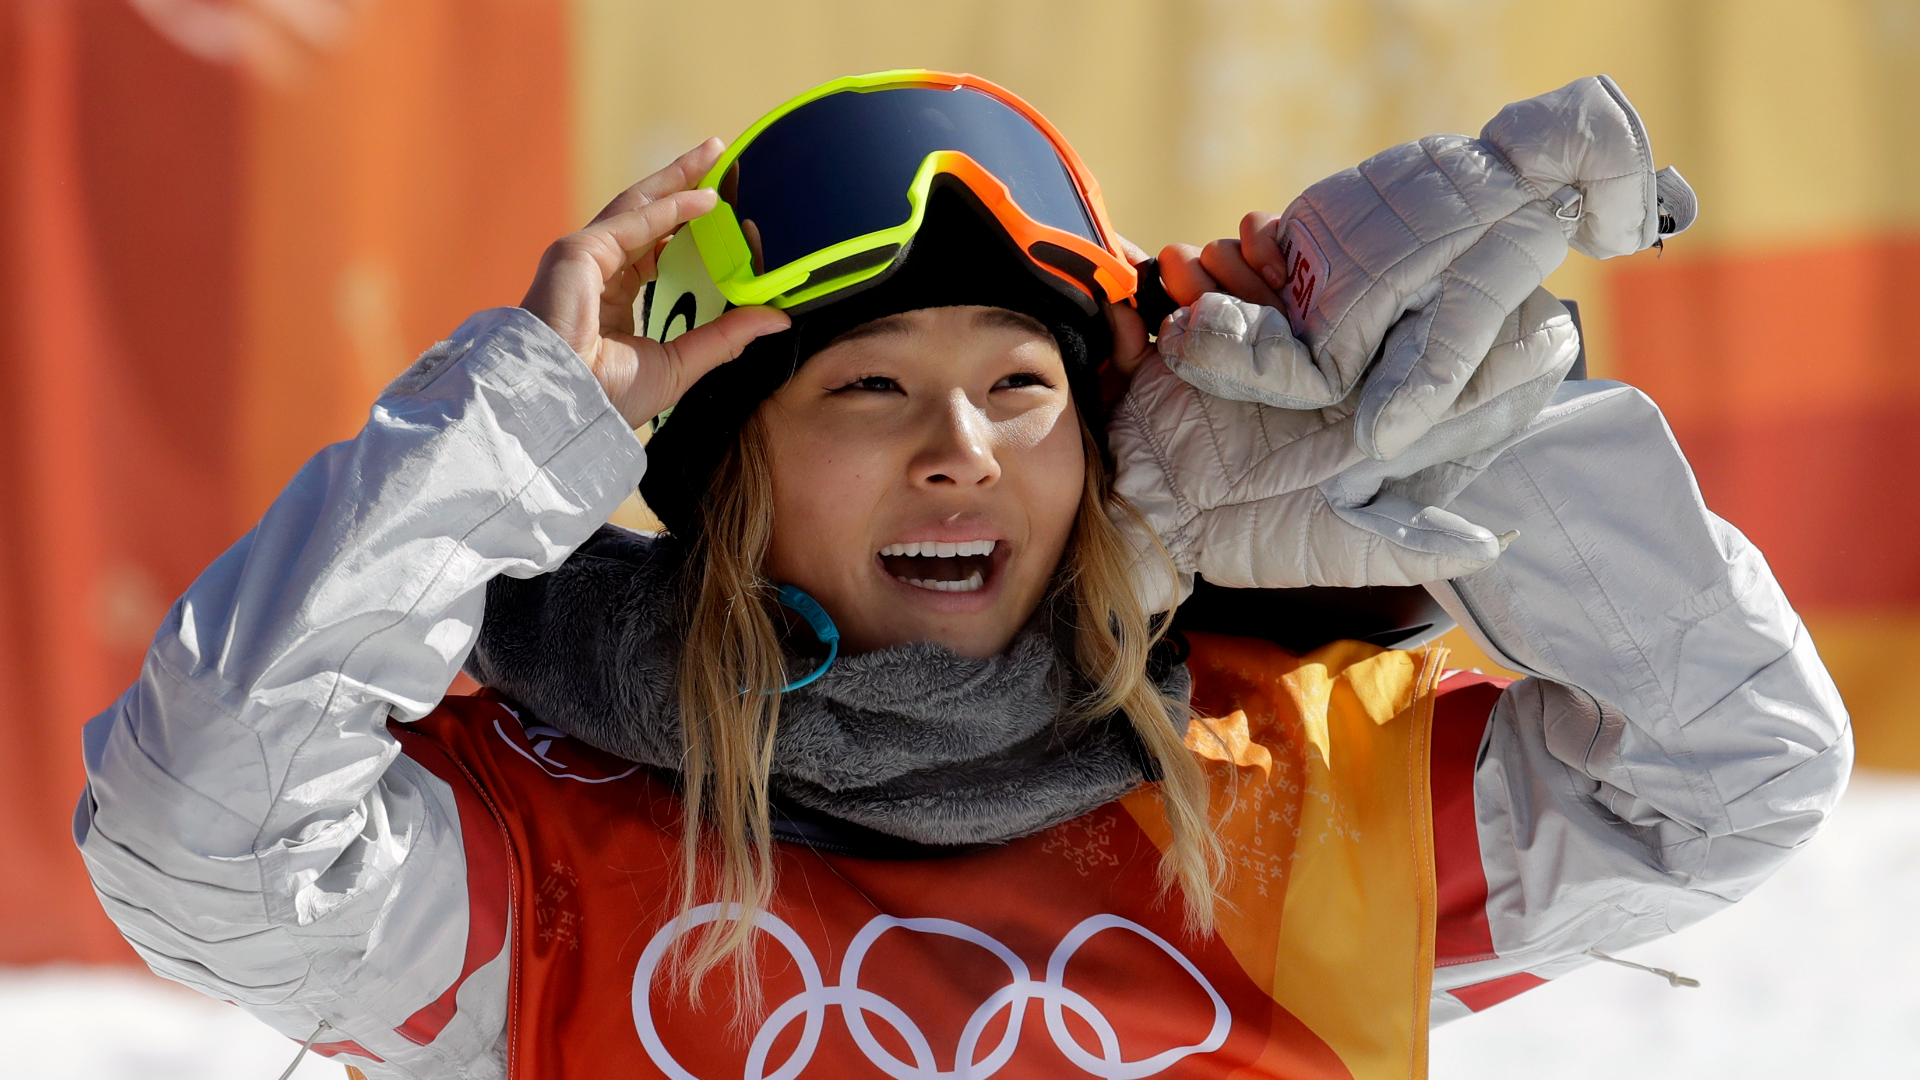 Chloe Kim's 'buddy' Arielle Gold joined her on the halfpipe podium, as bronze medalist